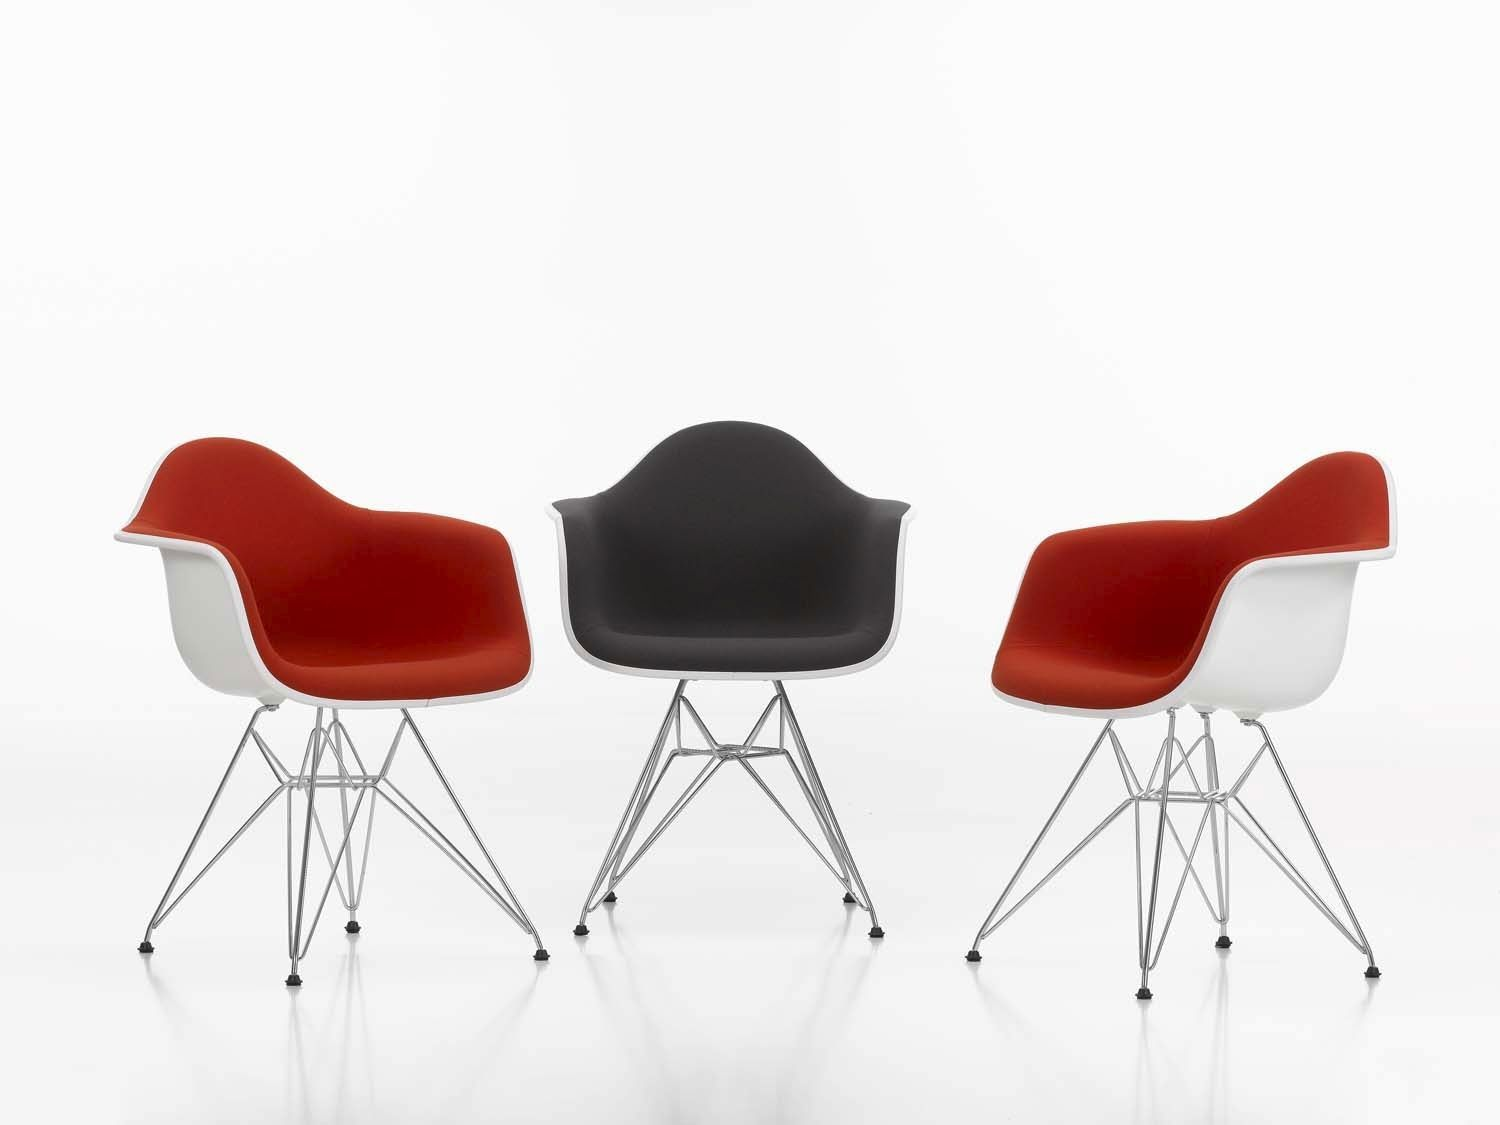 Charles & Ray Eames - Molded Plastic Armchair - 1948 | Chairs and ...